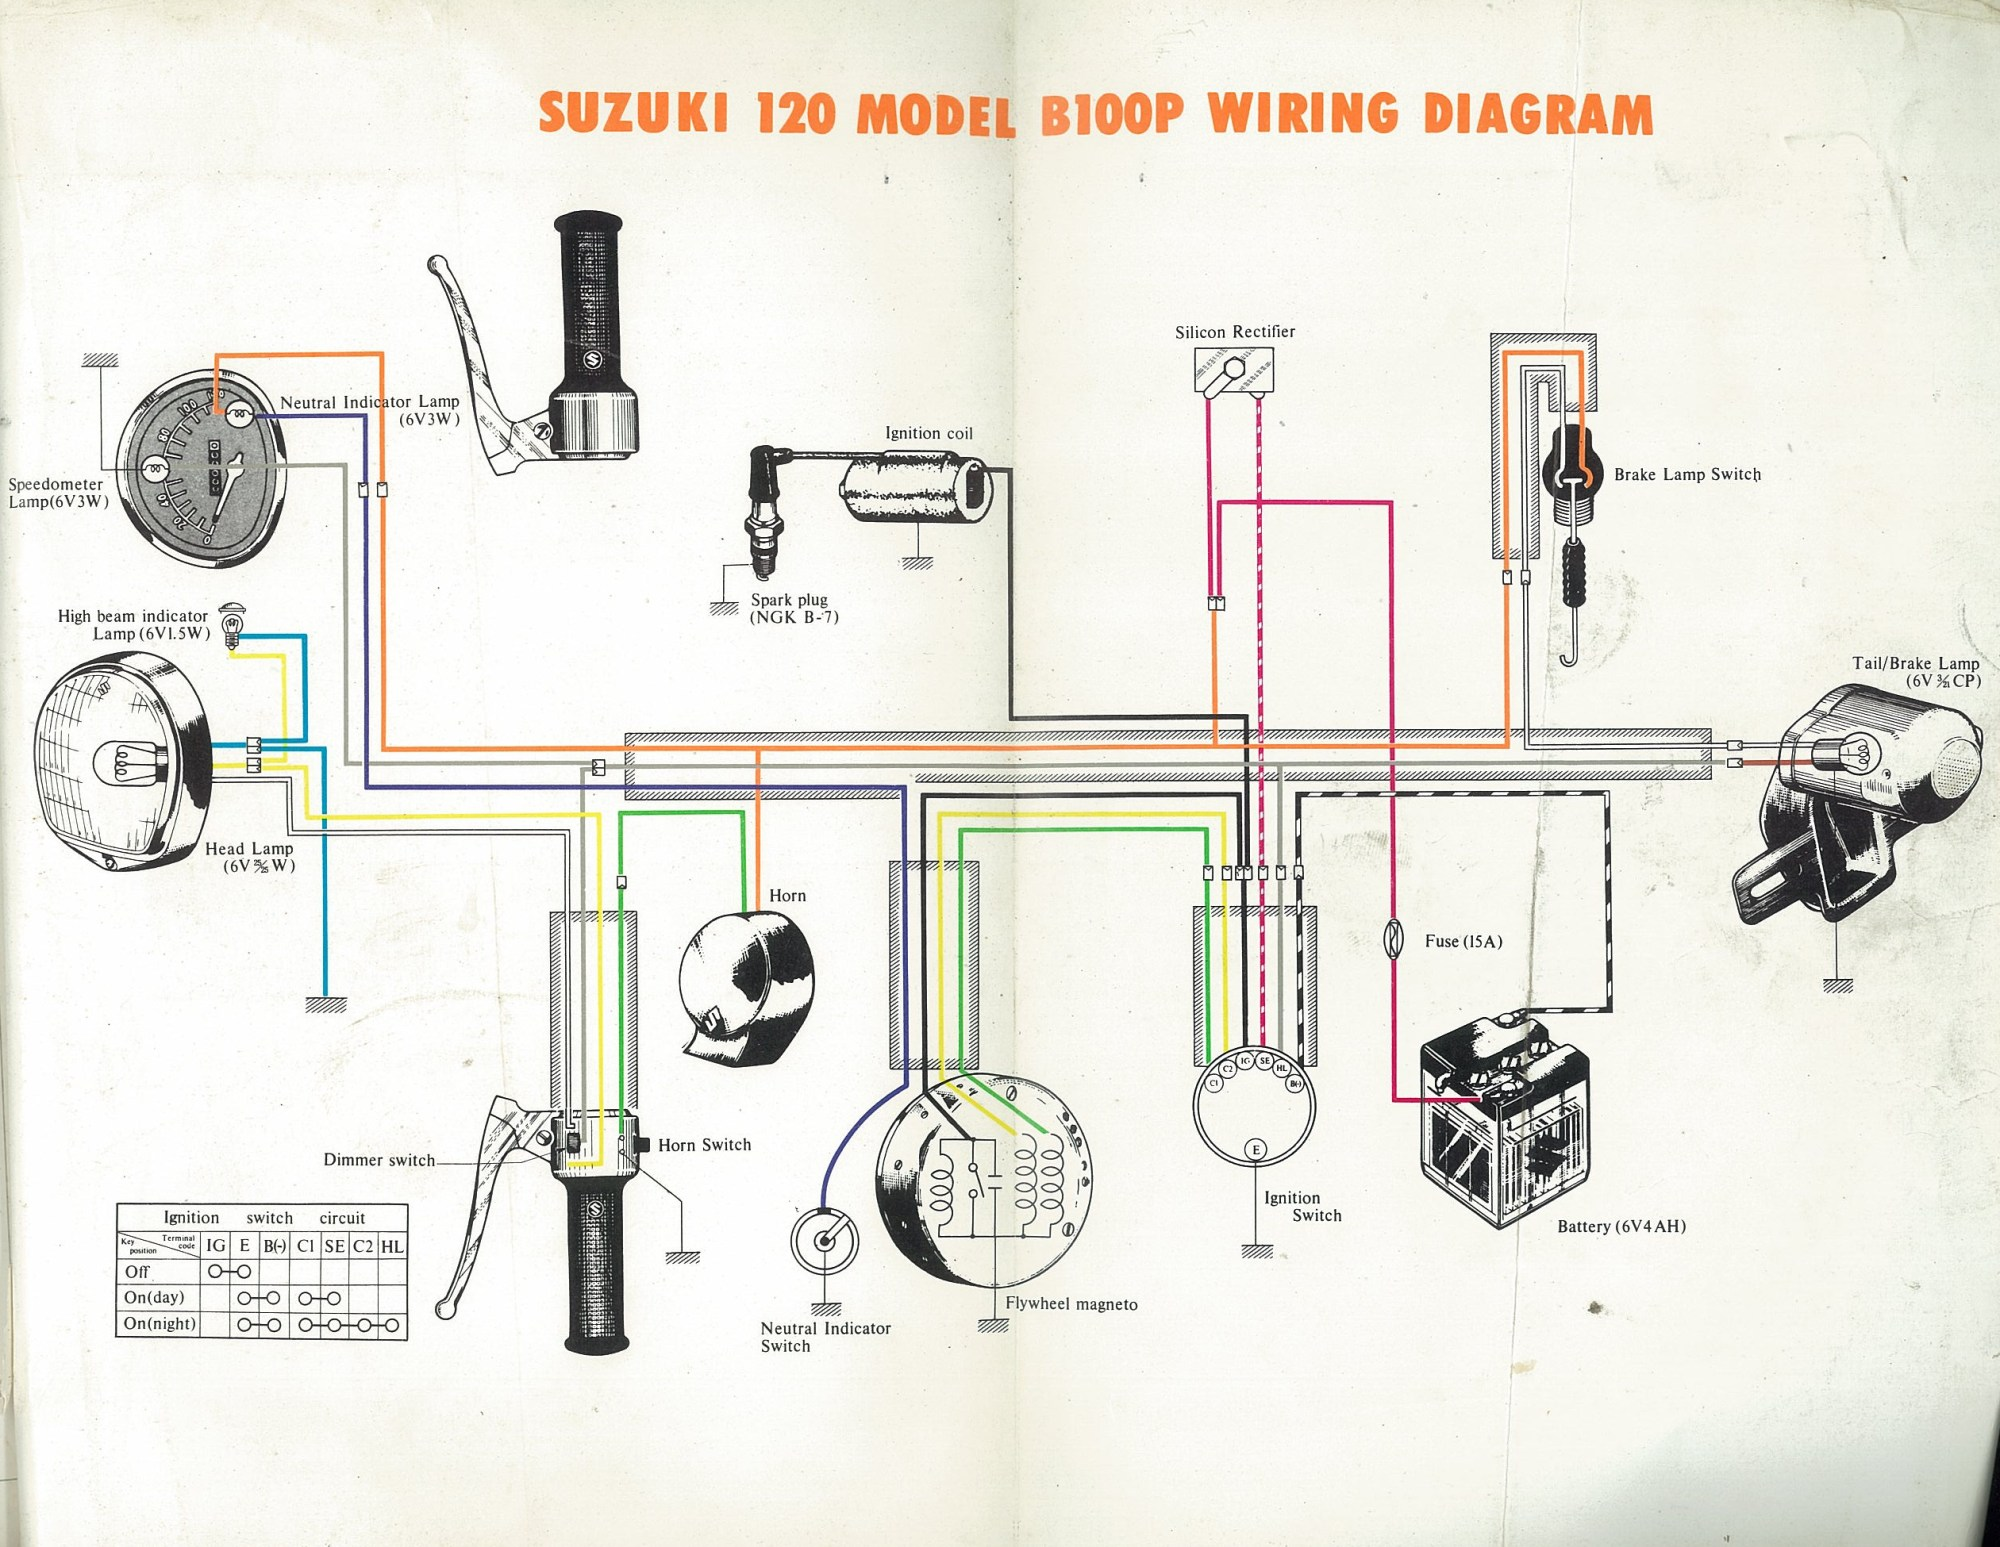 hight resolution of suzuki x4 125 motorcycle wiring diagram wiring diagram blog suzuki 125 wiring diagram wiring diagram suzuki